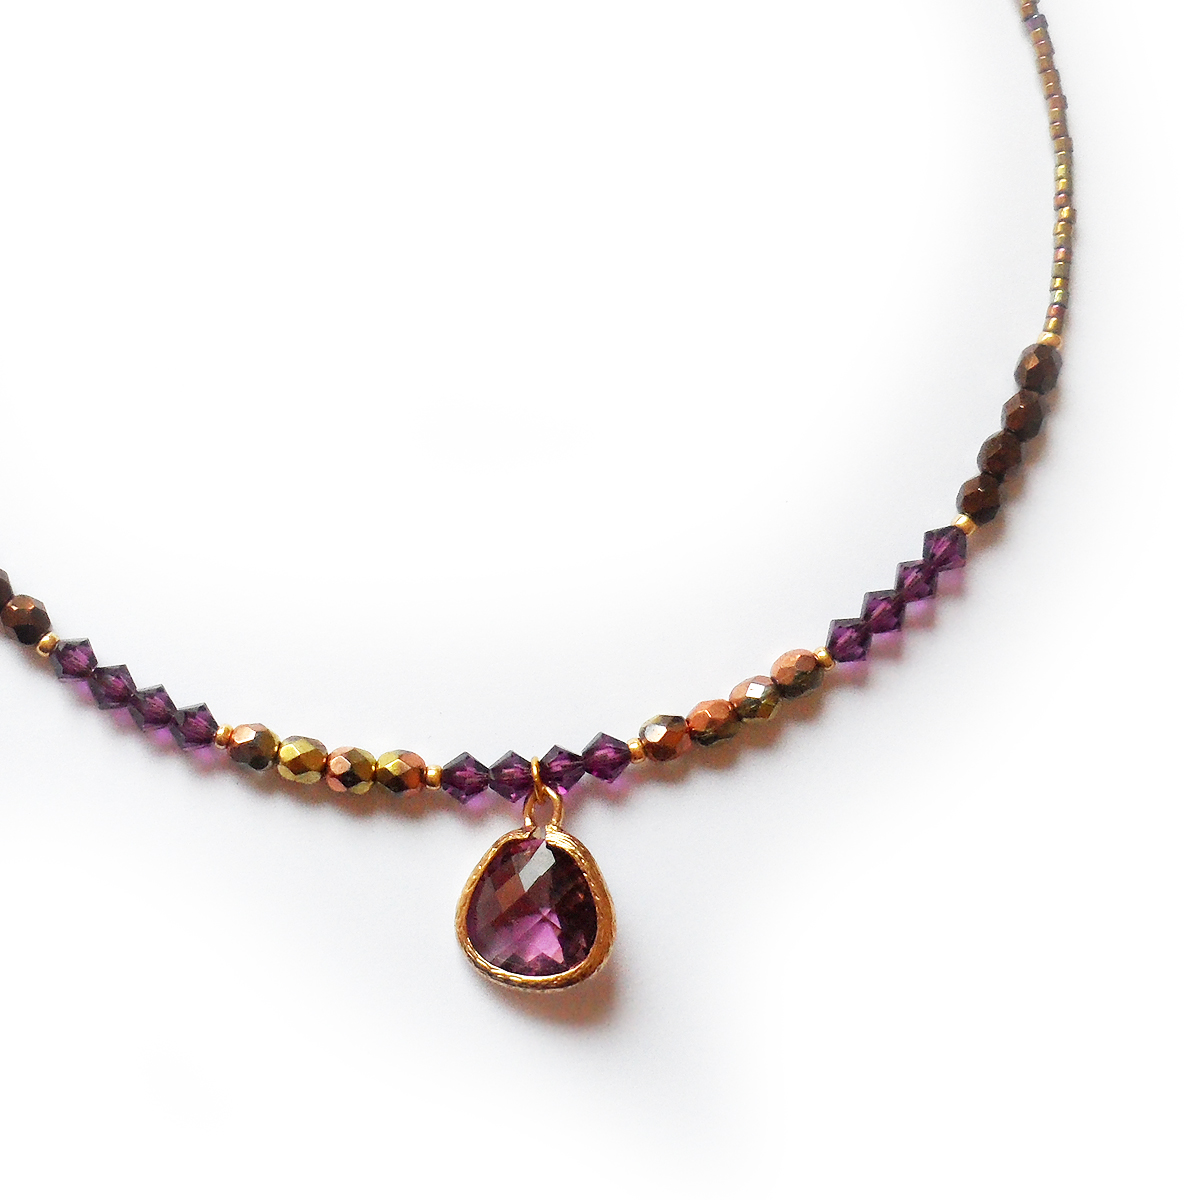 Belize Necklace with purple glass charm and amethyst swarovski ... 665d2df3944c